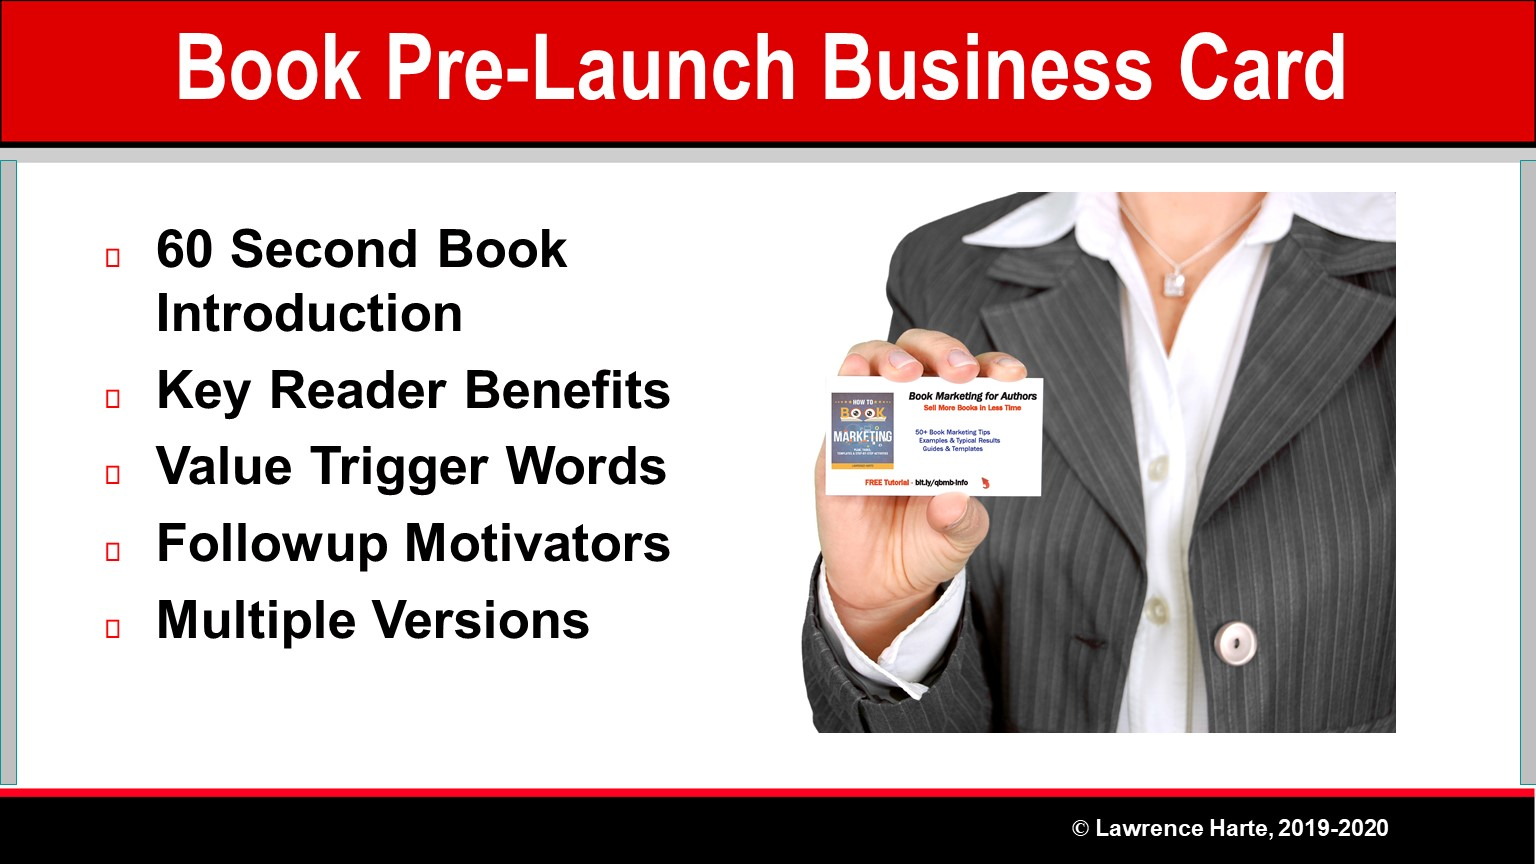 Book Pre-Launch Business Card